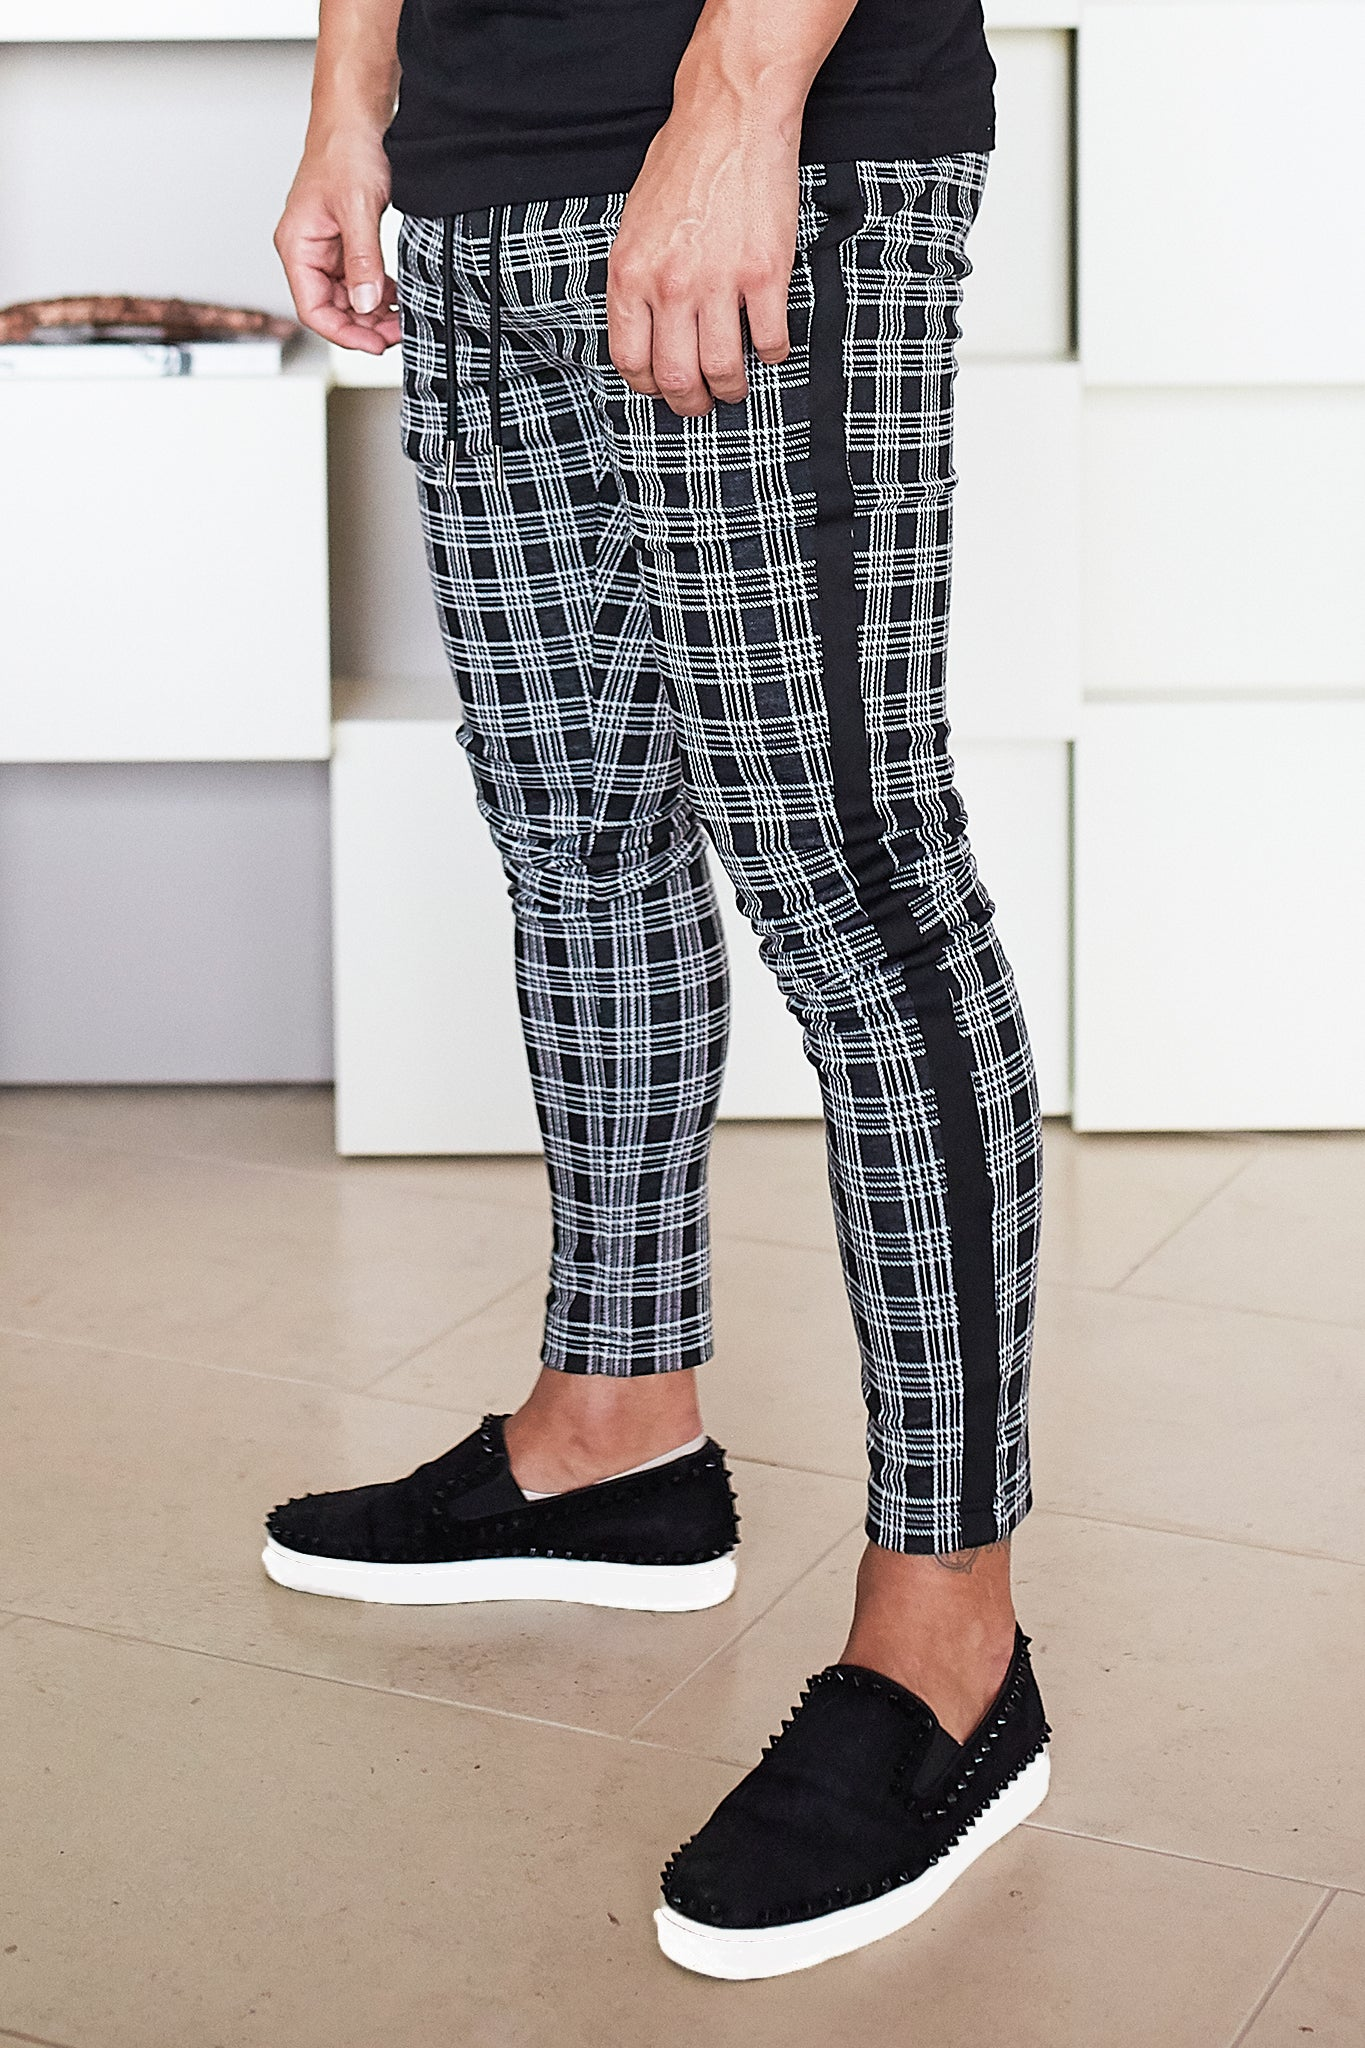 Glen Plaid Check Trousers - Illusion Attire